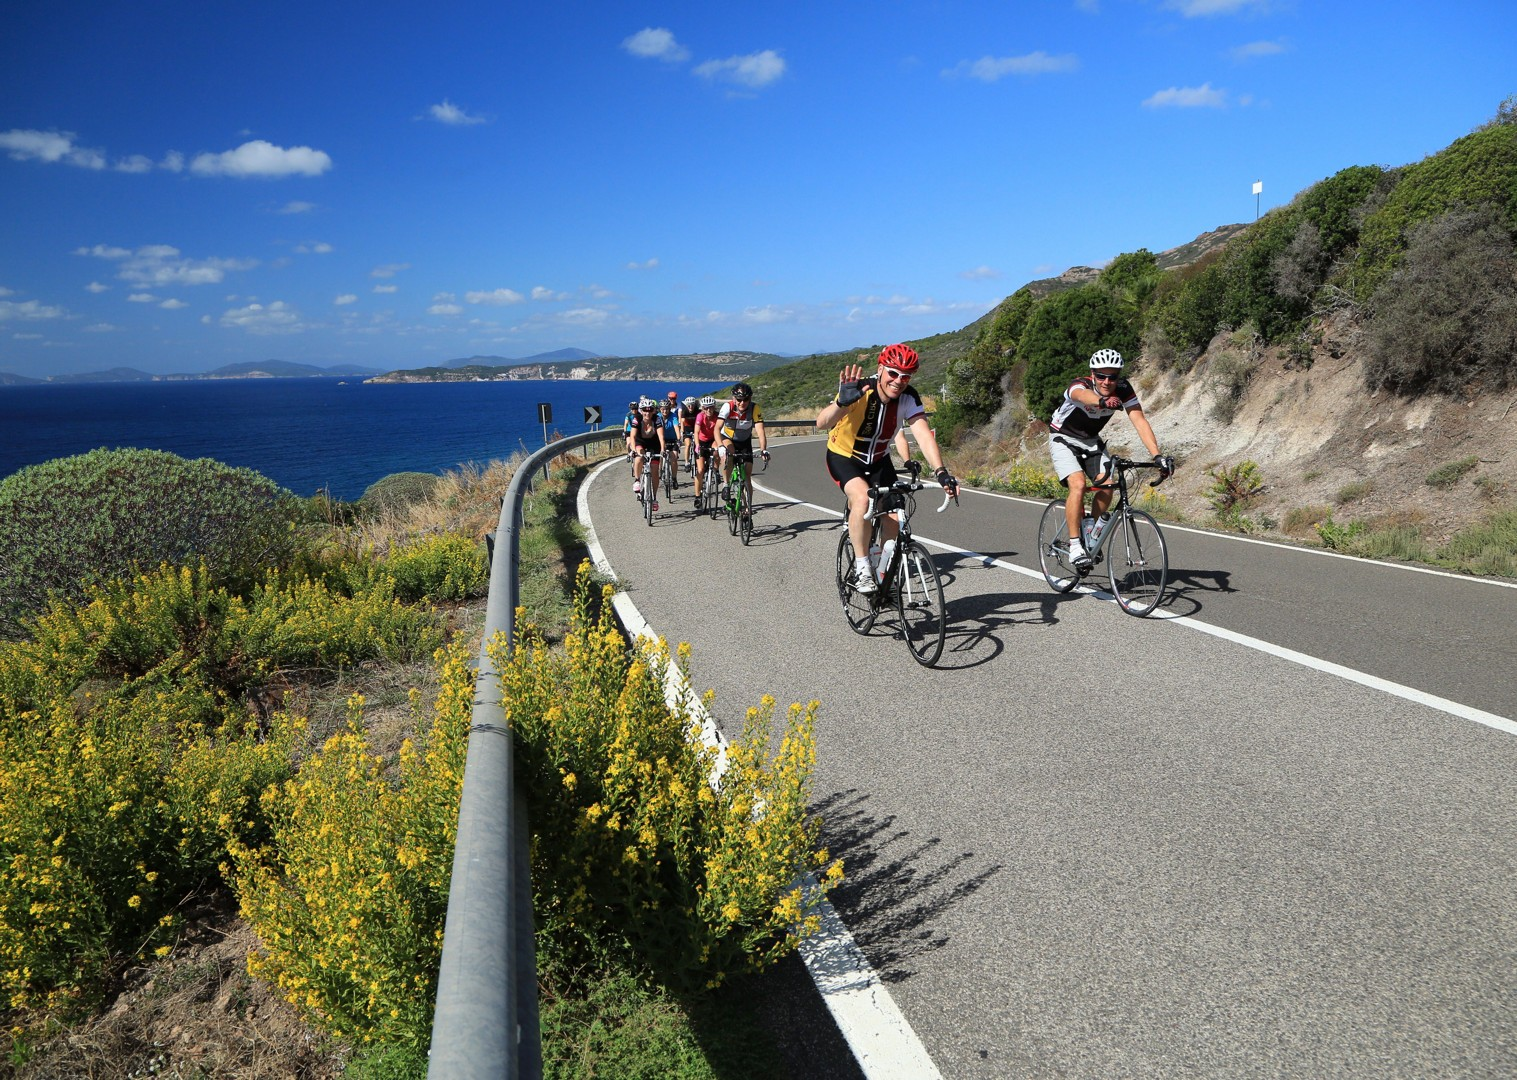 Guided-Road-Cycling-Holiday-Coastal-Explorer-Sardinia.jpg - Italy - Sardinia - Coastal Explorer - Road Cycling